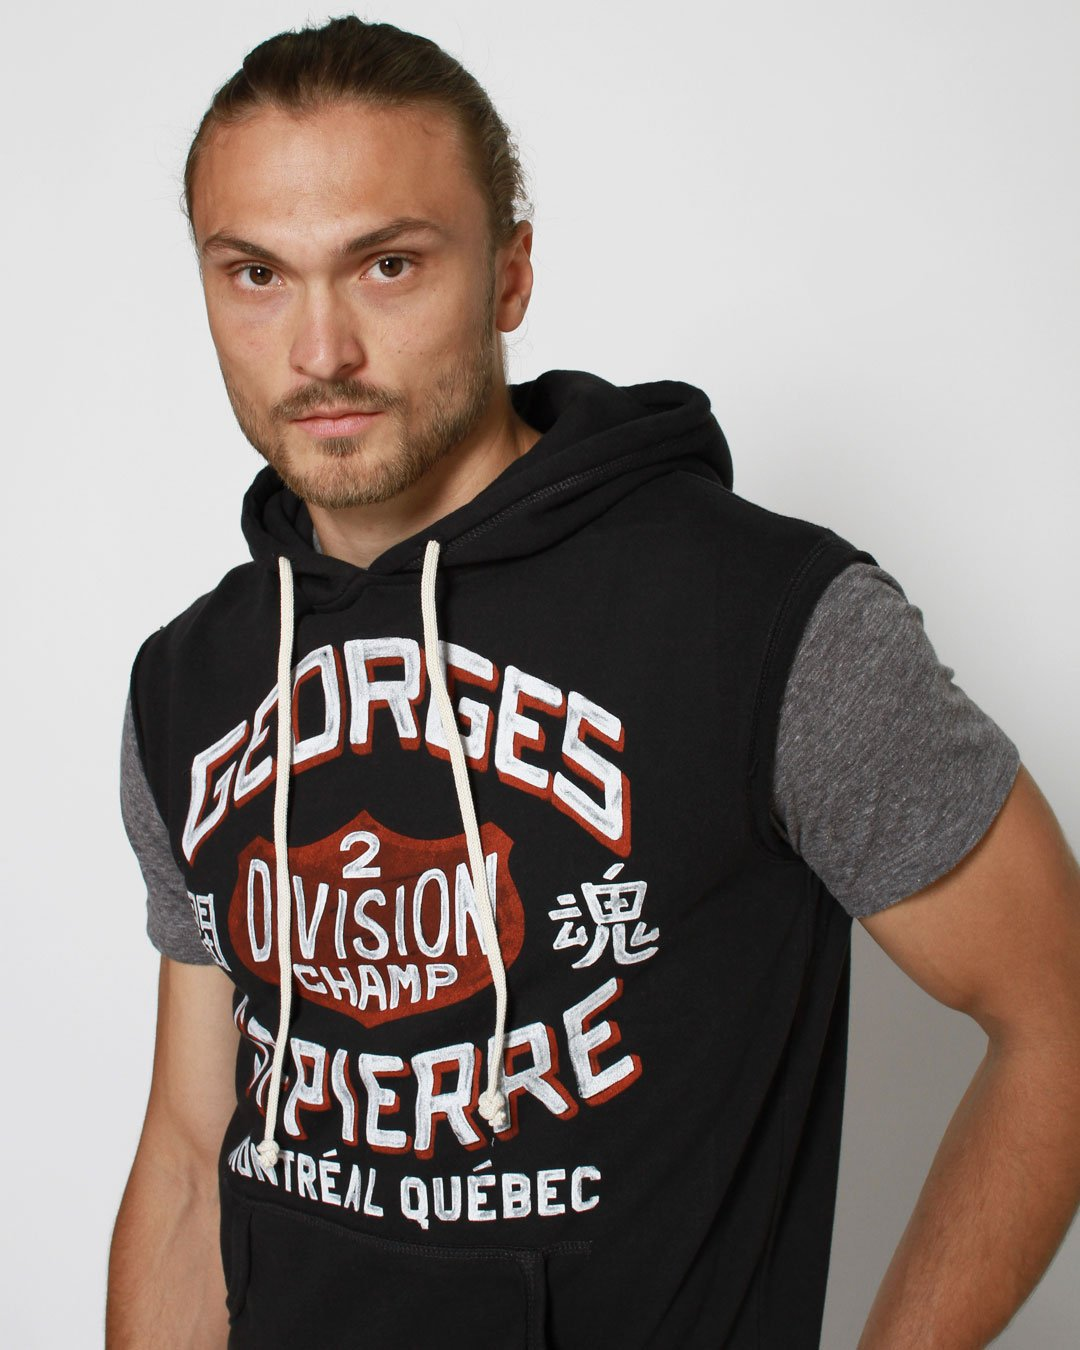 GSP 2 Division Champ Sleeveless Hoody